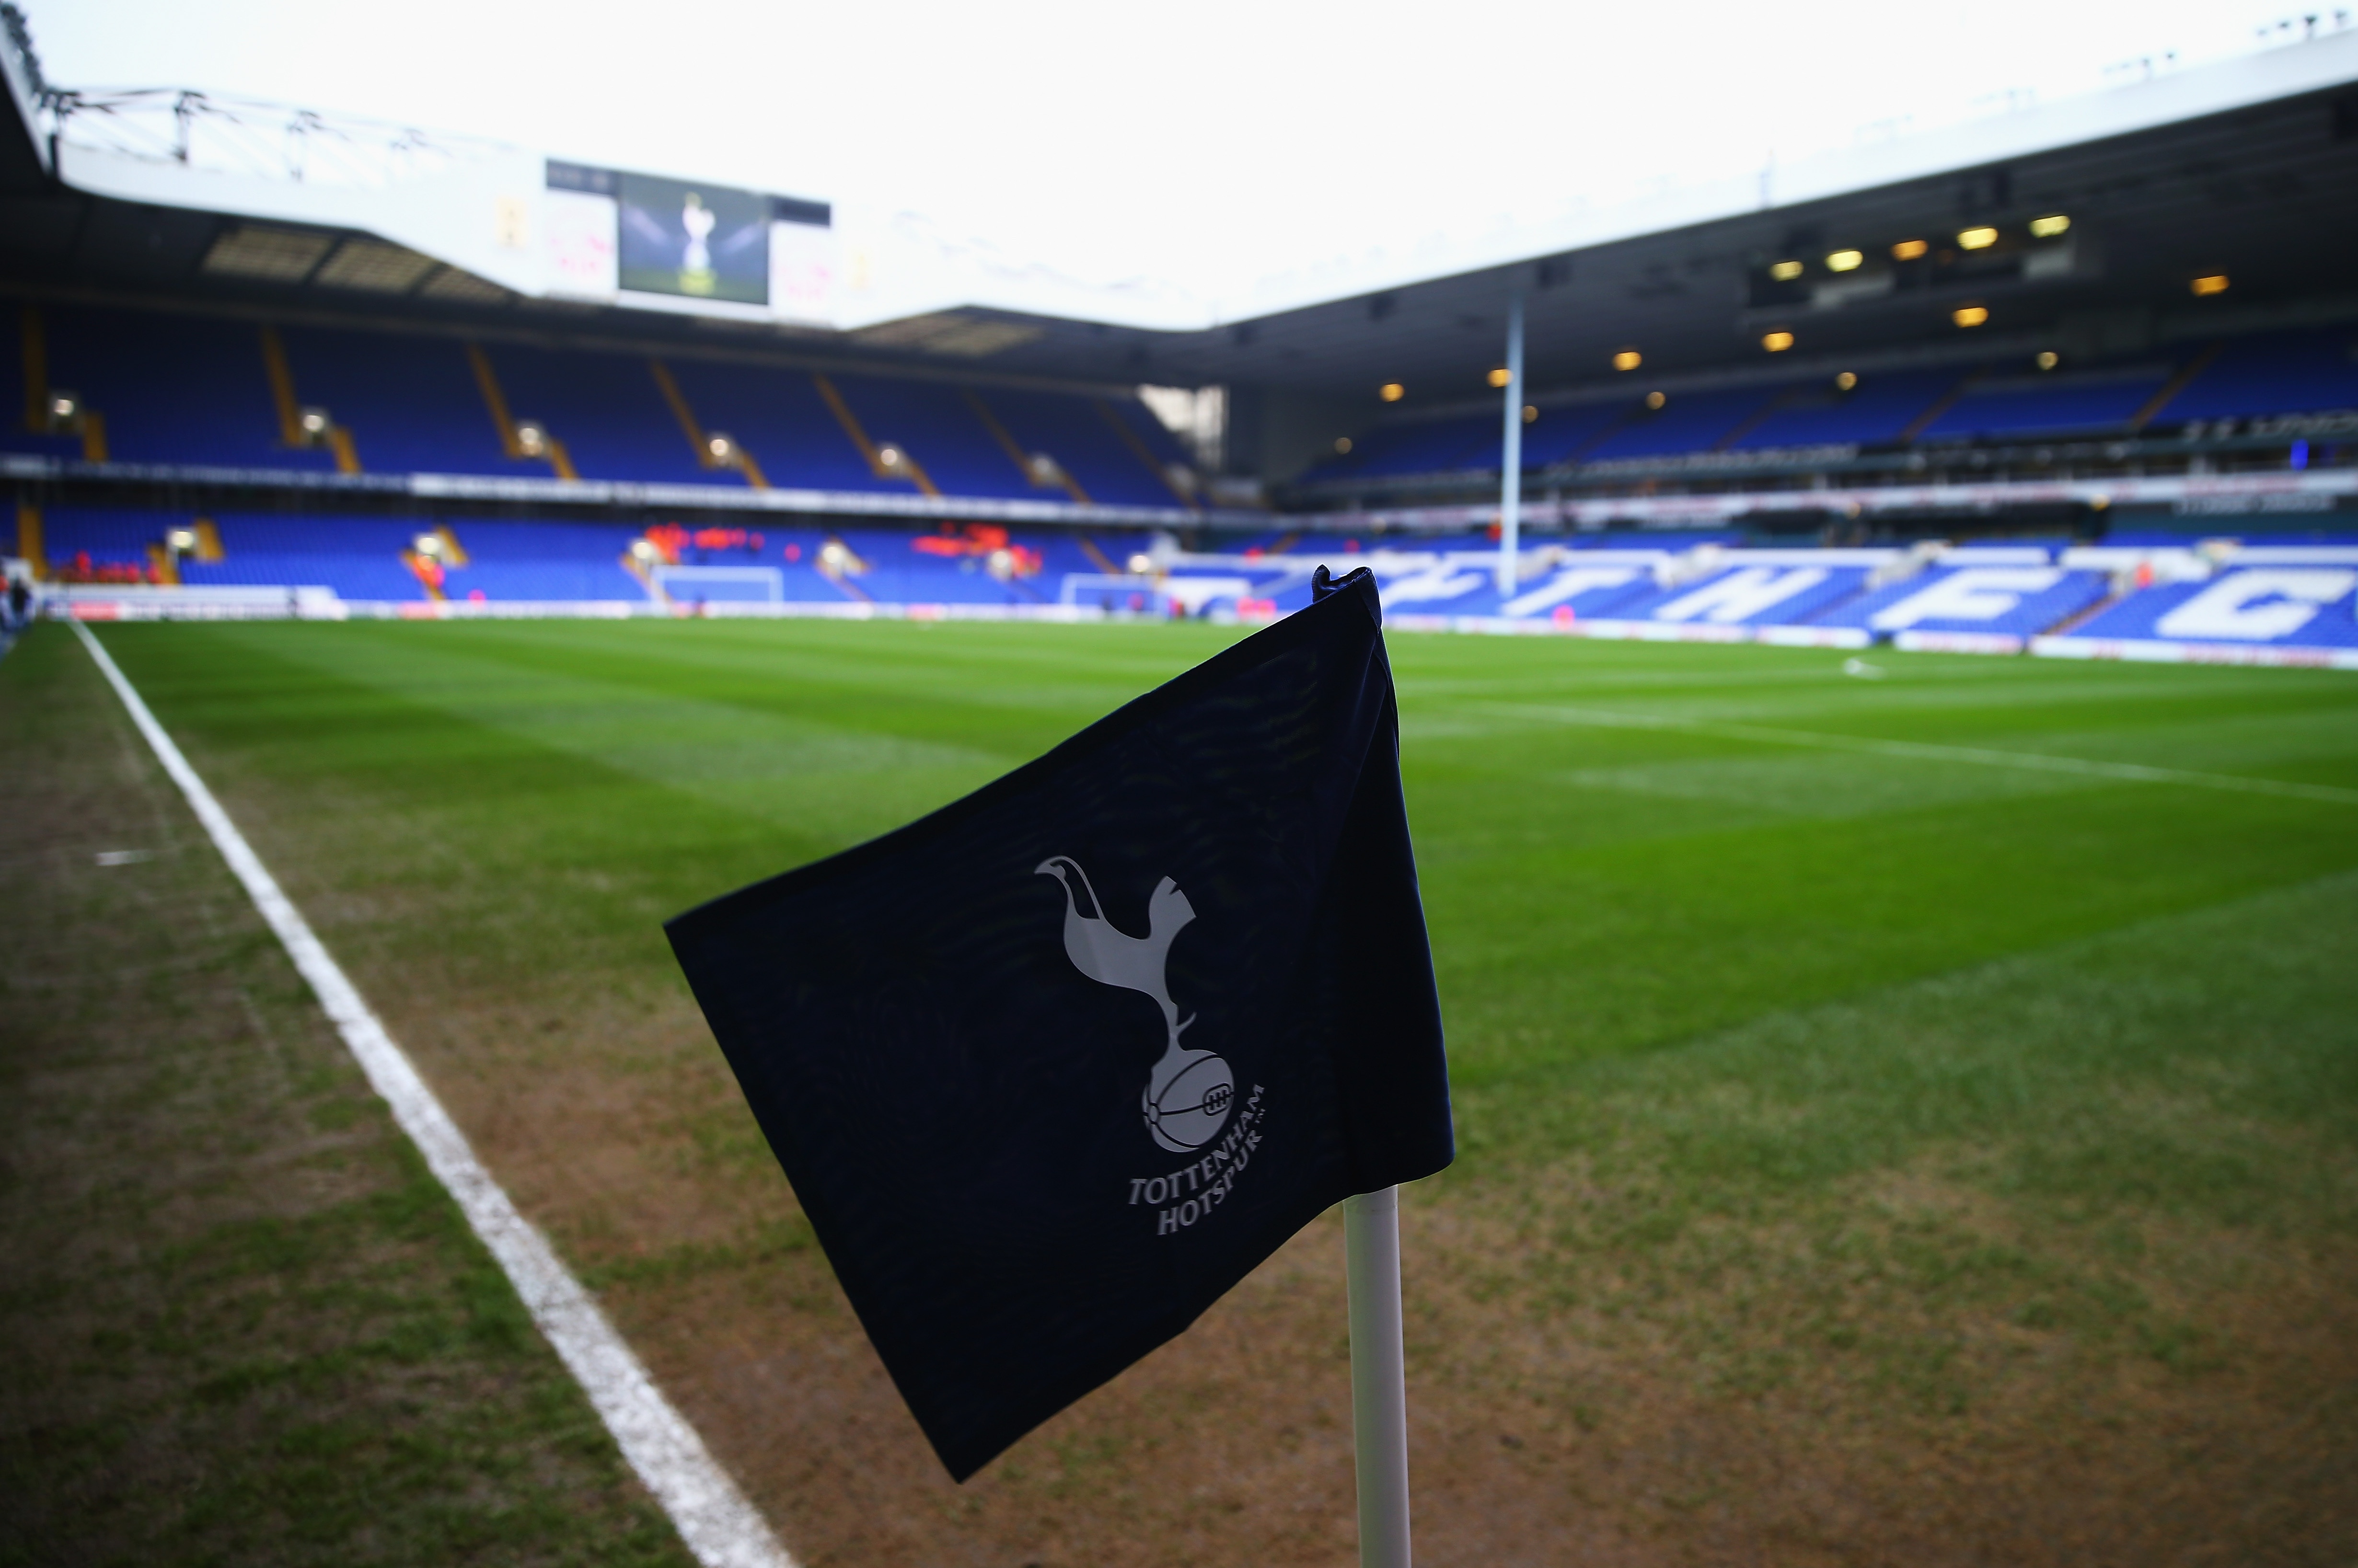 LONDON, ENGLAND - DECEMBER 13: A general view of the stadium and corner flag prior to the Barclays Premier League match between Tottenham Hotspur and Newcastle United at White Hart Lane on December 13, 2015 in London, England. (Photo by Clive Rose/Getty Images)